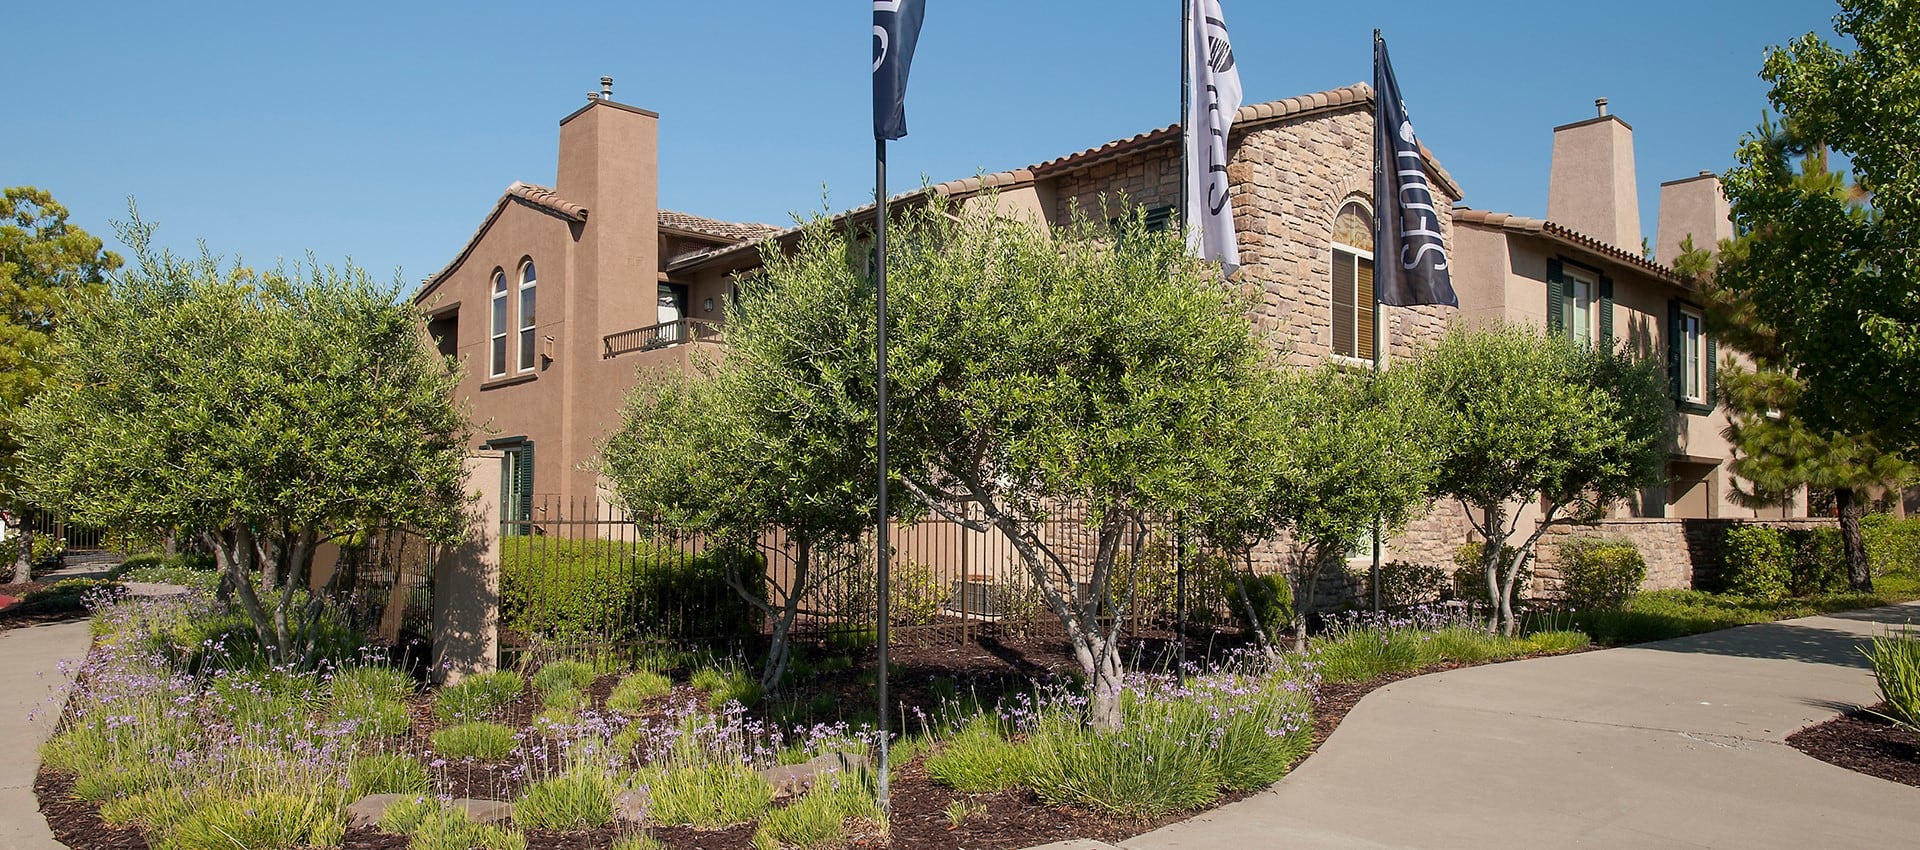 Learn about our neighborhood at Venu at Galleria Condominium Rentals in Roseville, California on our website